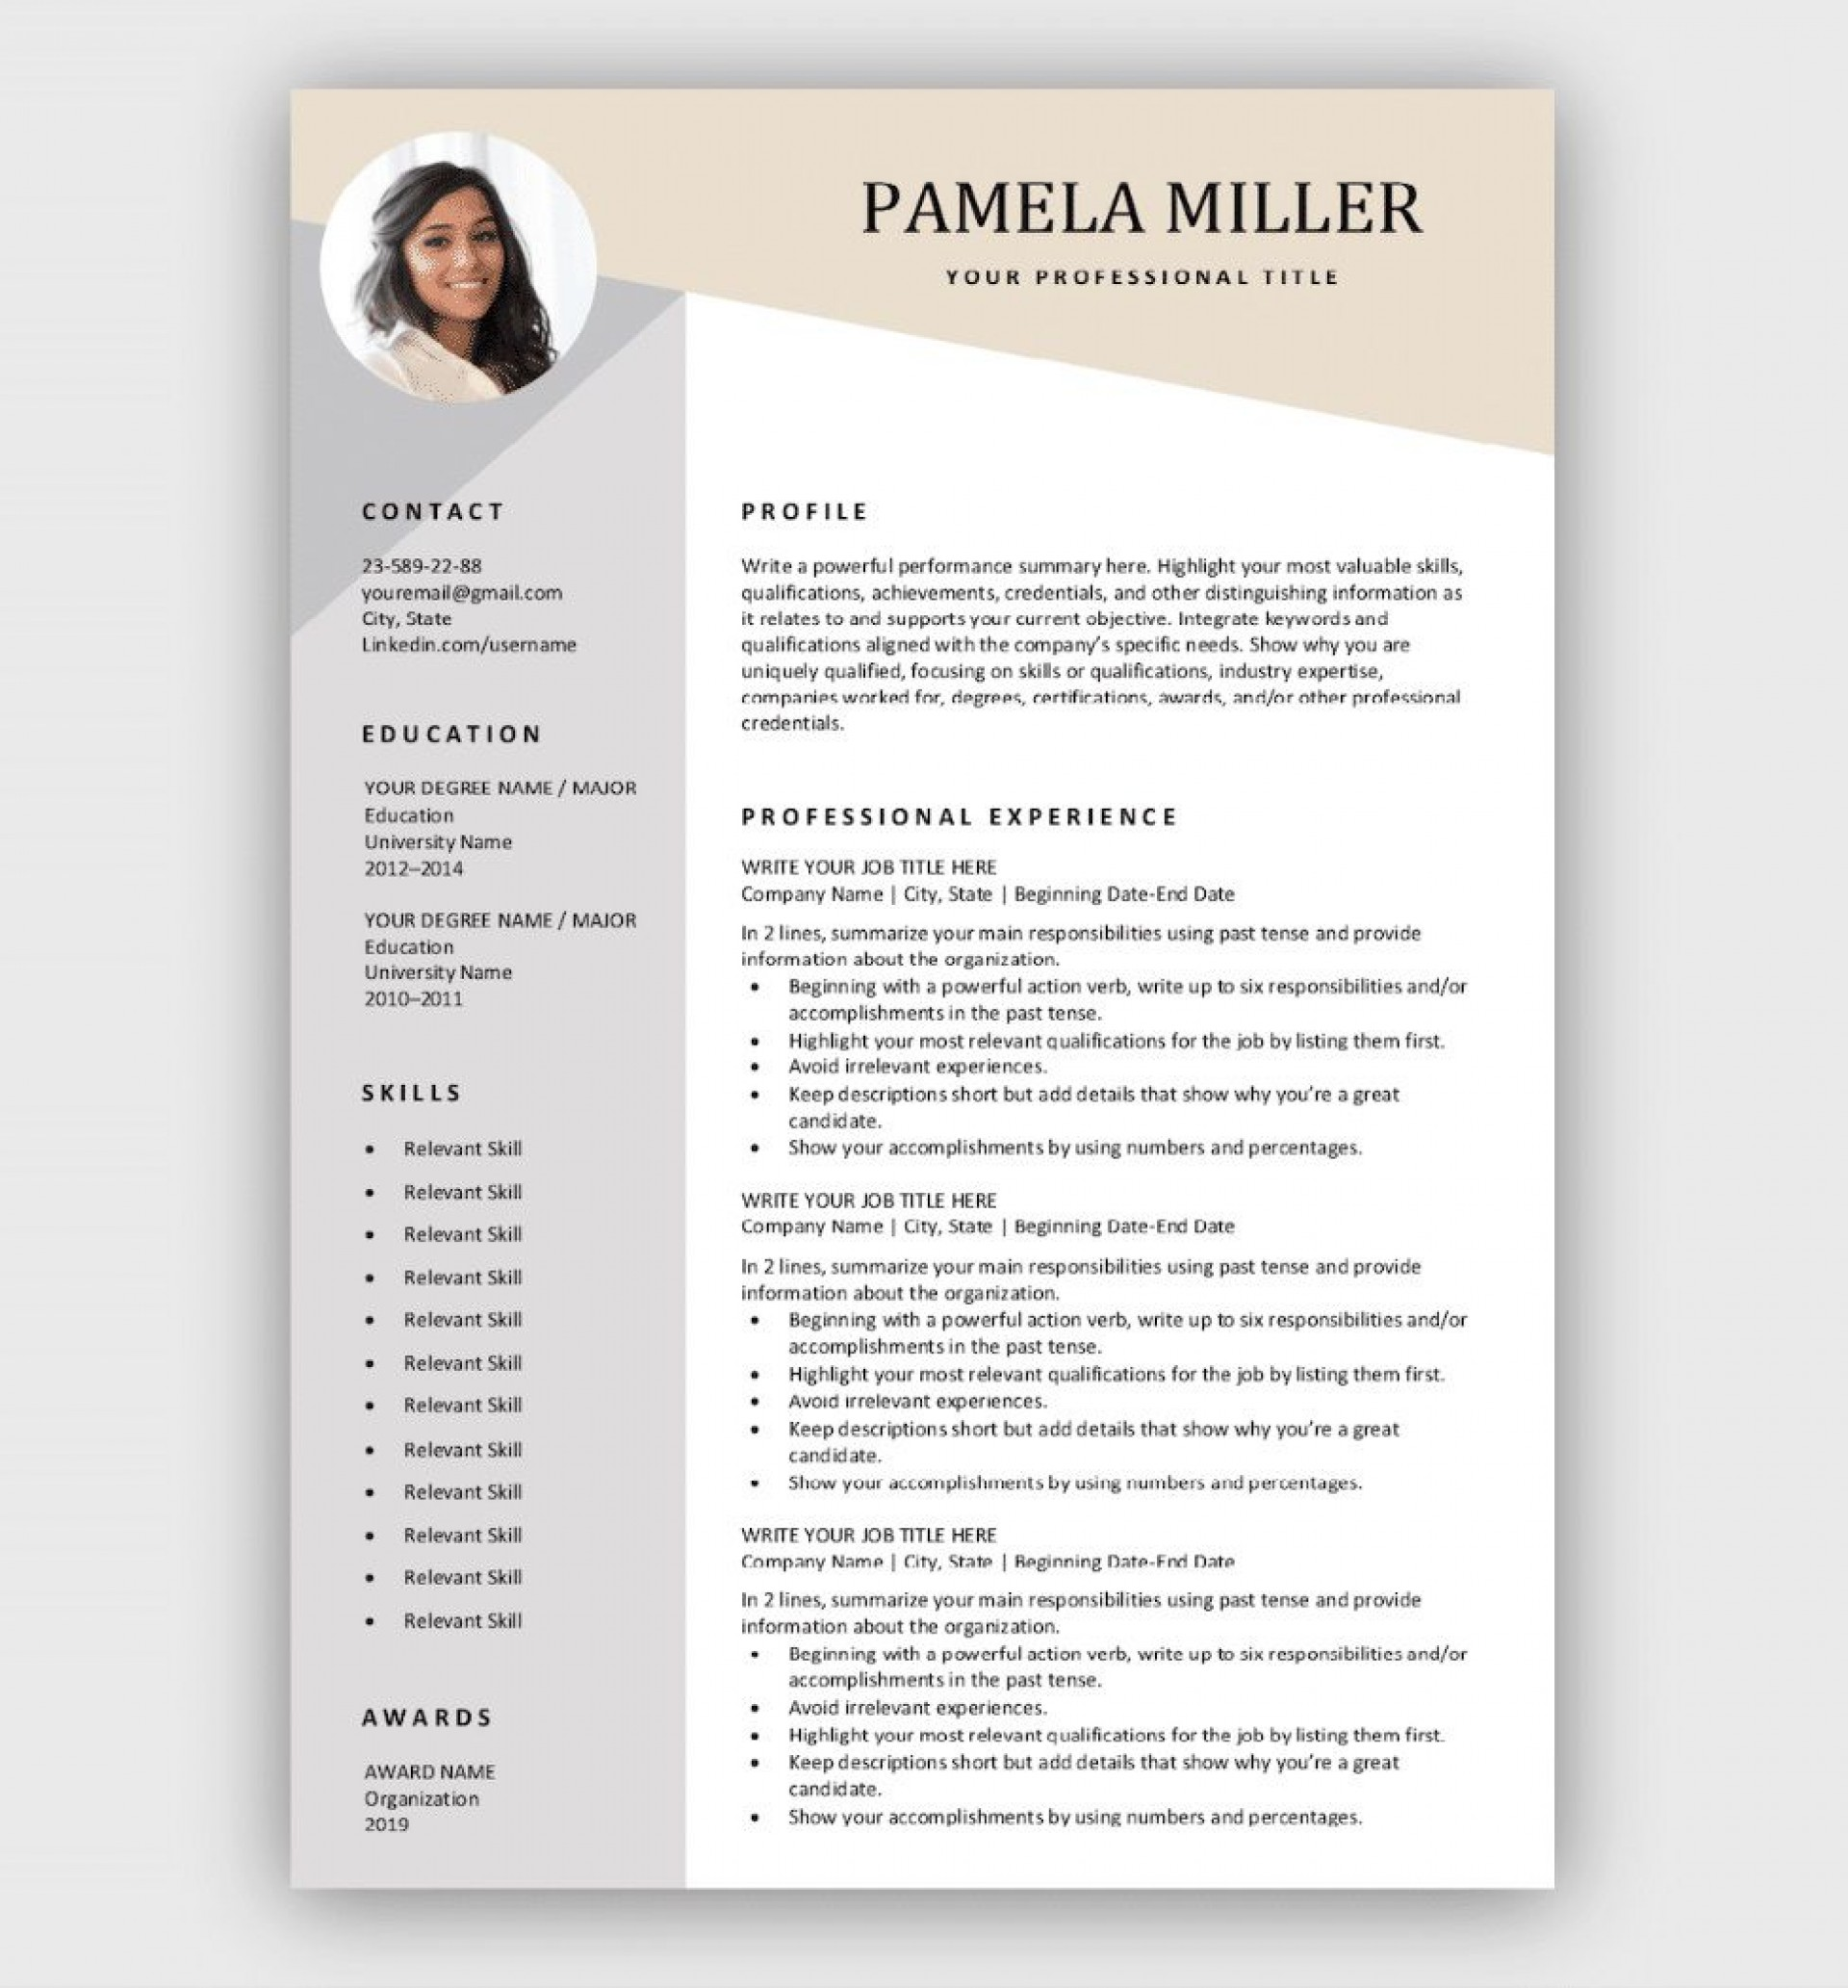 008 Remarkable Resume Template Download Free Photo  Word 2018 Page Pdf1920